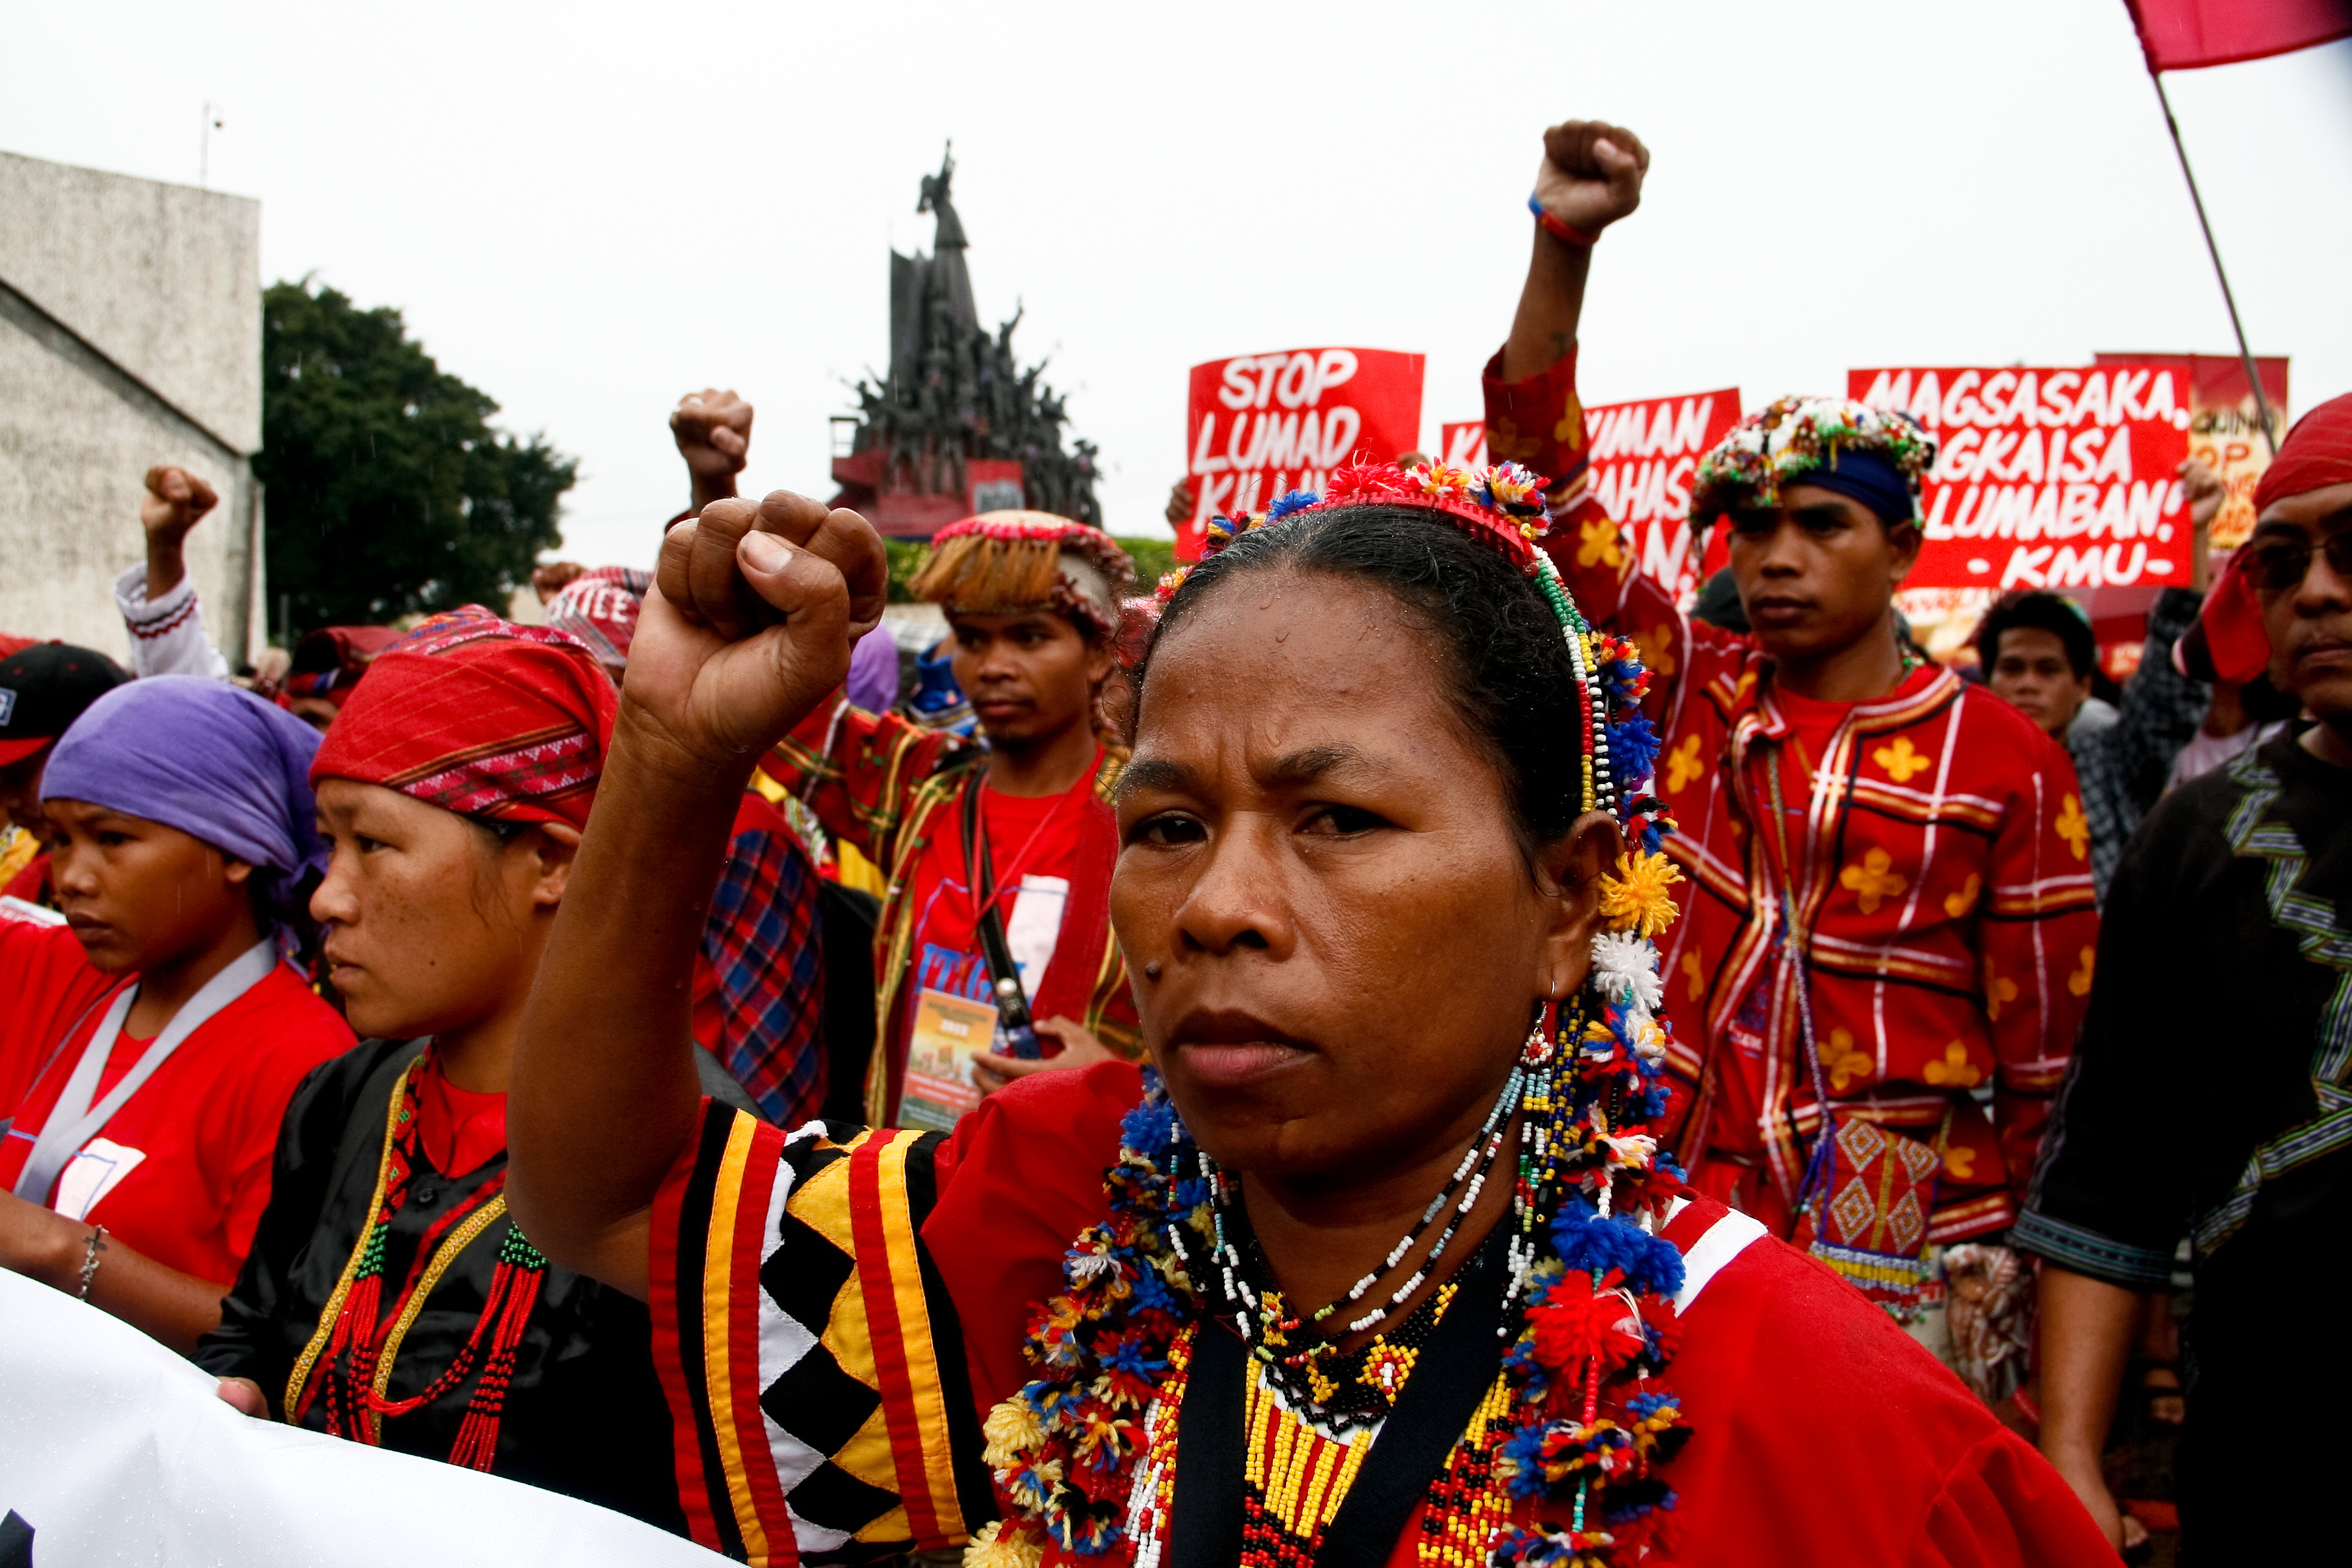 Lumads start their march to Camp Aguinaldo in Quezon City.  Hundreds of  Lumad  marched to the headquarters of the Armed Forces of the Philippines in Camp Aguinaldo, to call for justice for the killings of their tribes men, allegedly perpetrated by members of the Philippine military.